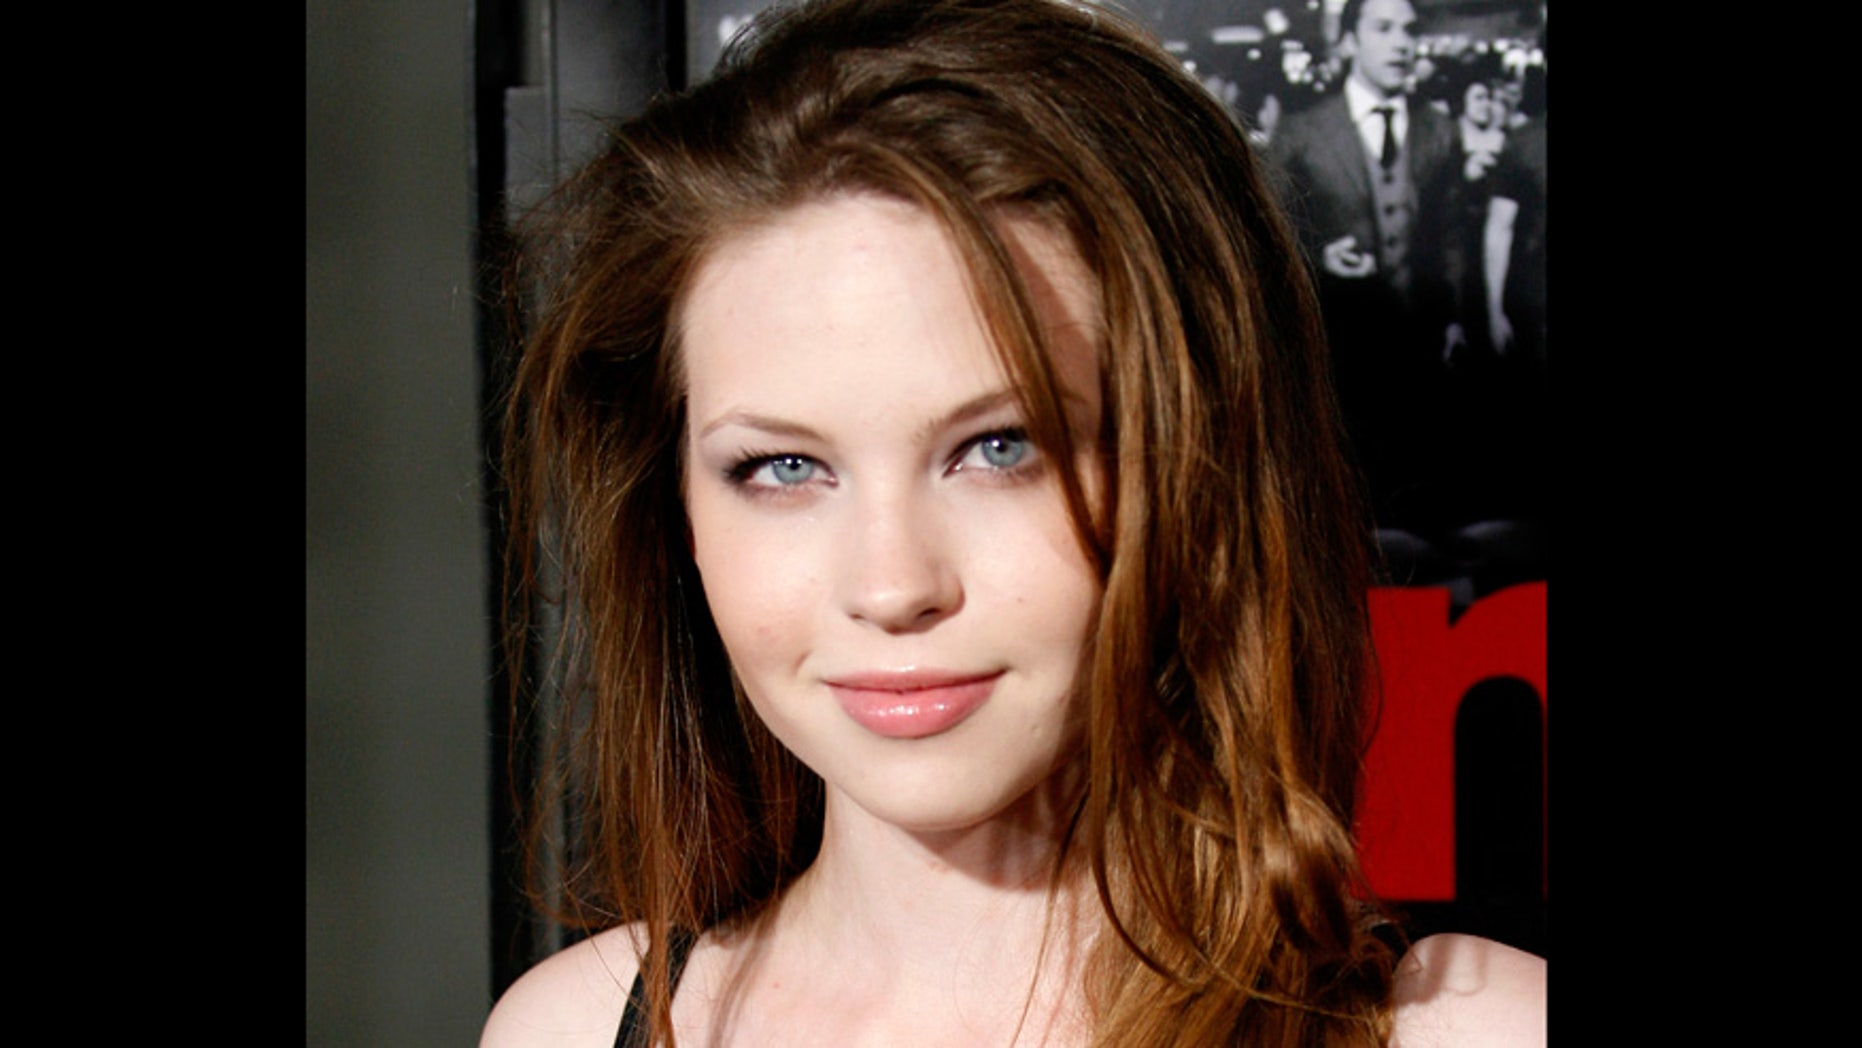 Daveigh Chase Daveigh Chase new picture